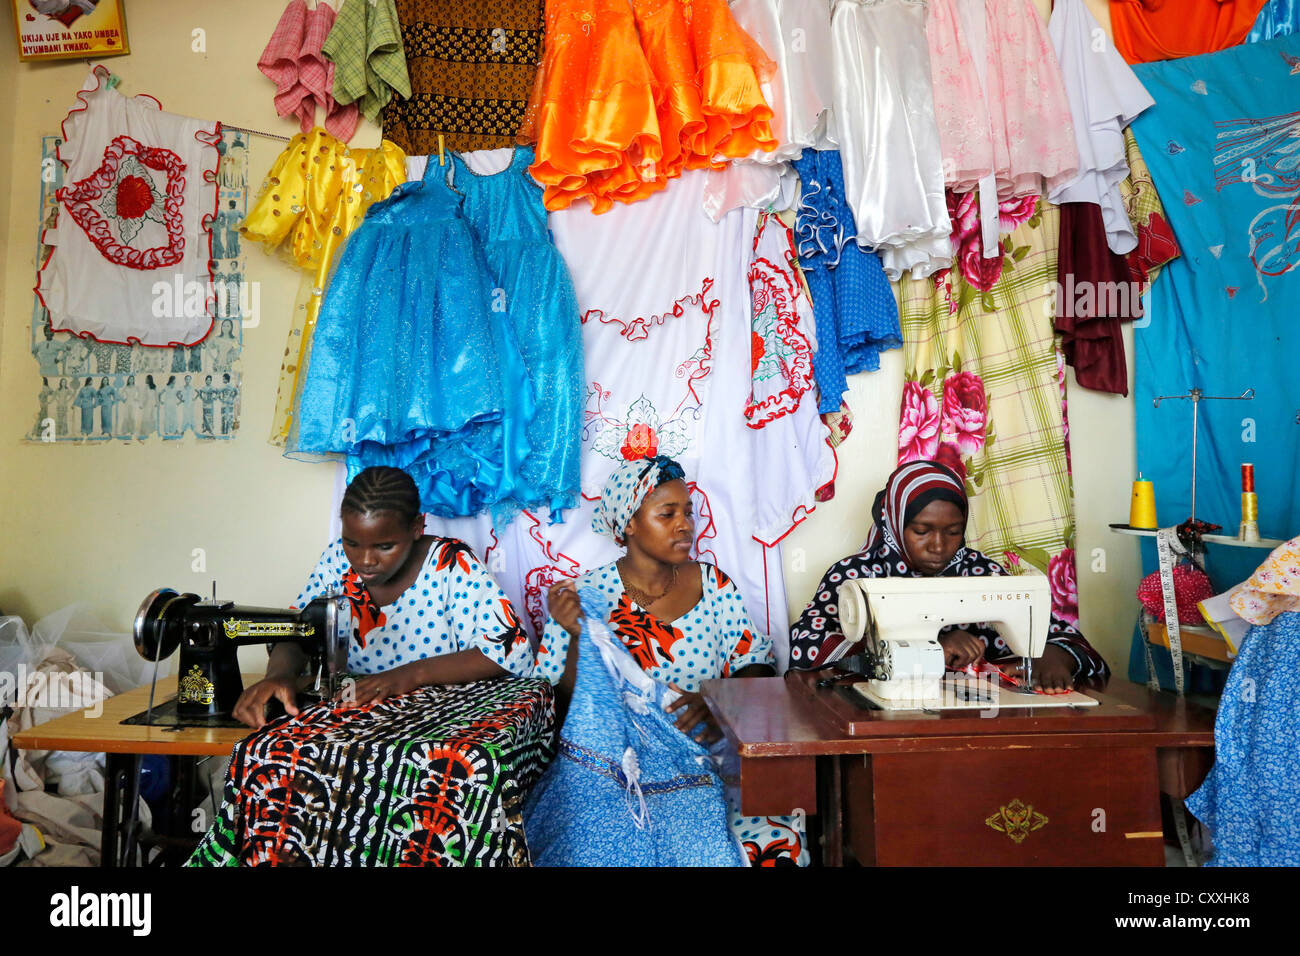 Women an sewing machines in a tailoring shop in Zanzibar / Tanzania - Stock Image